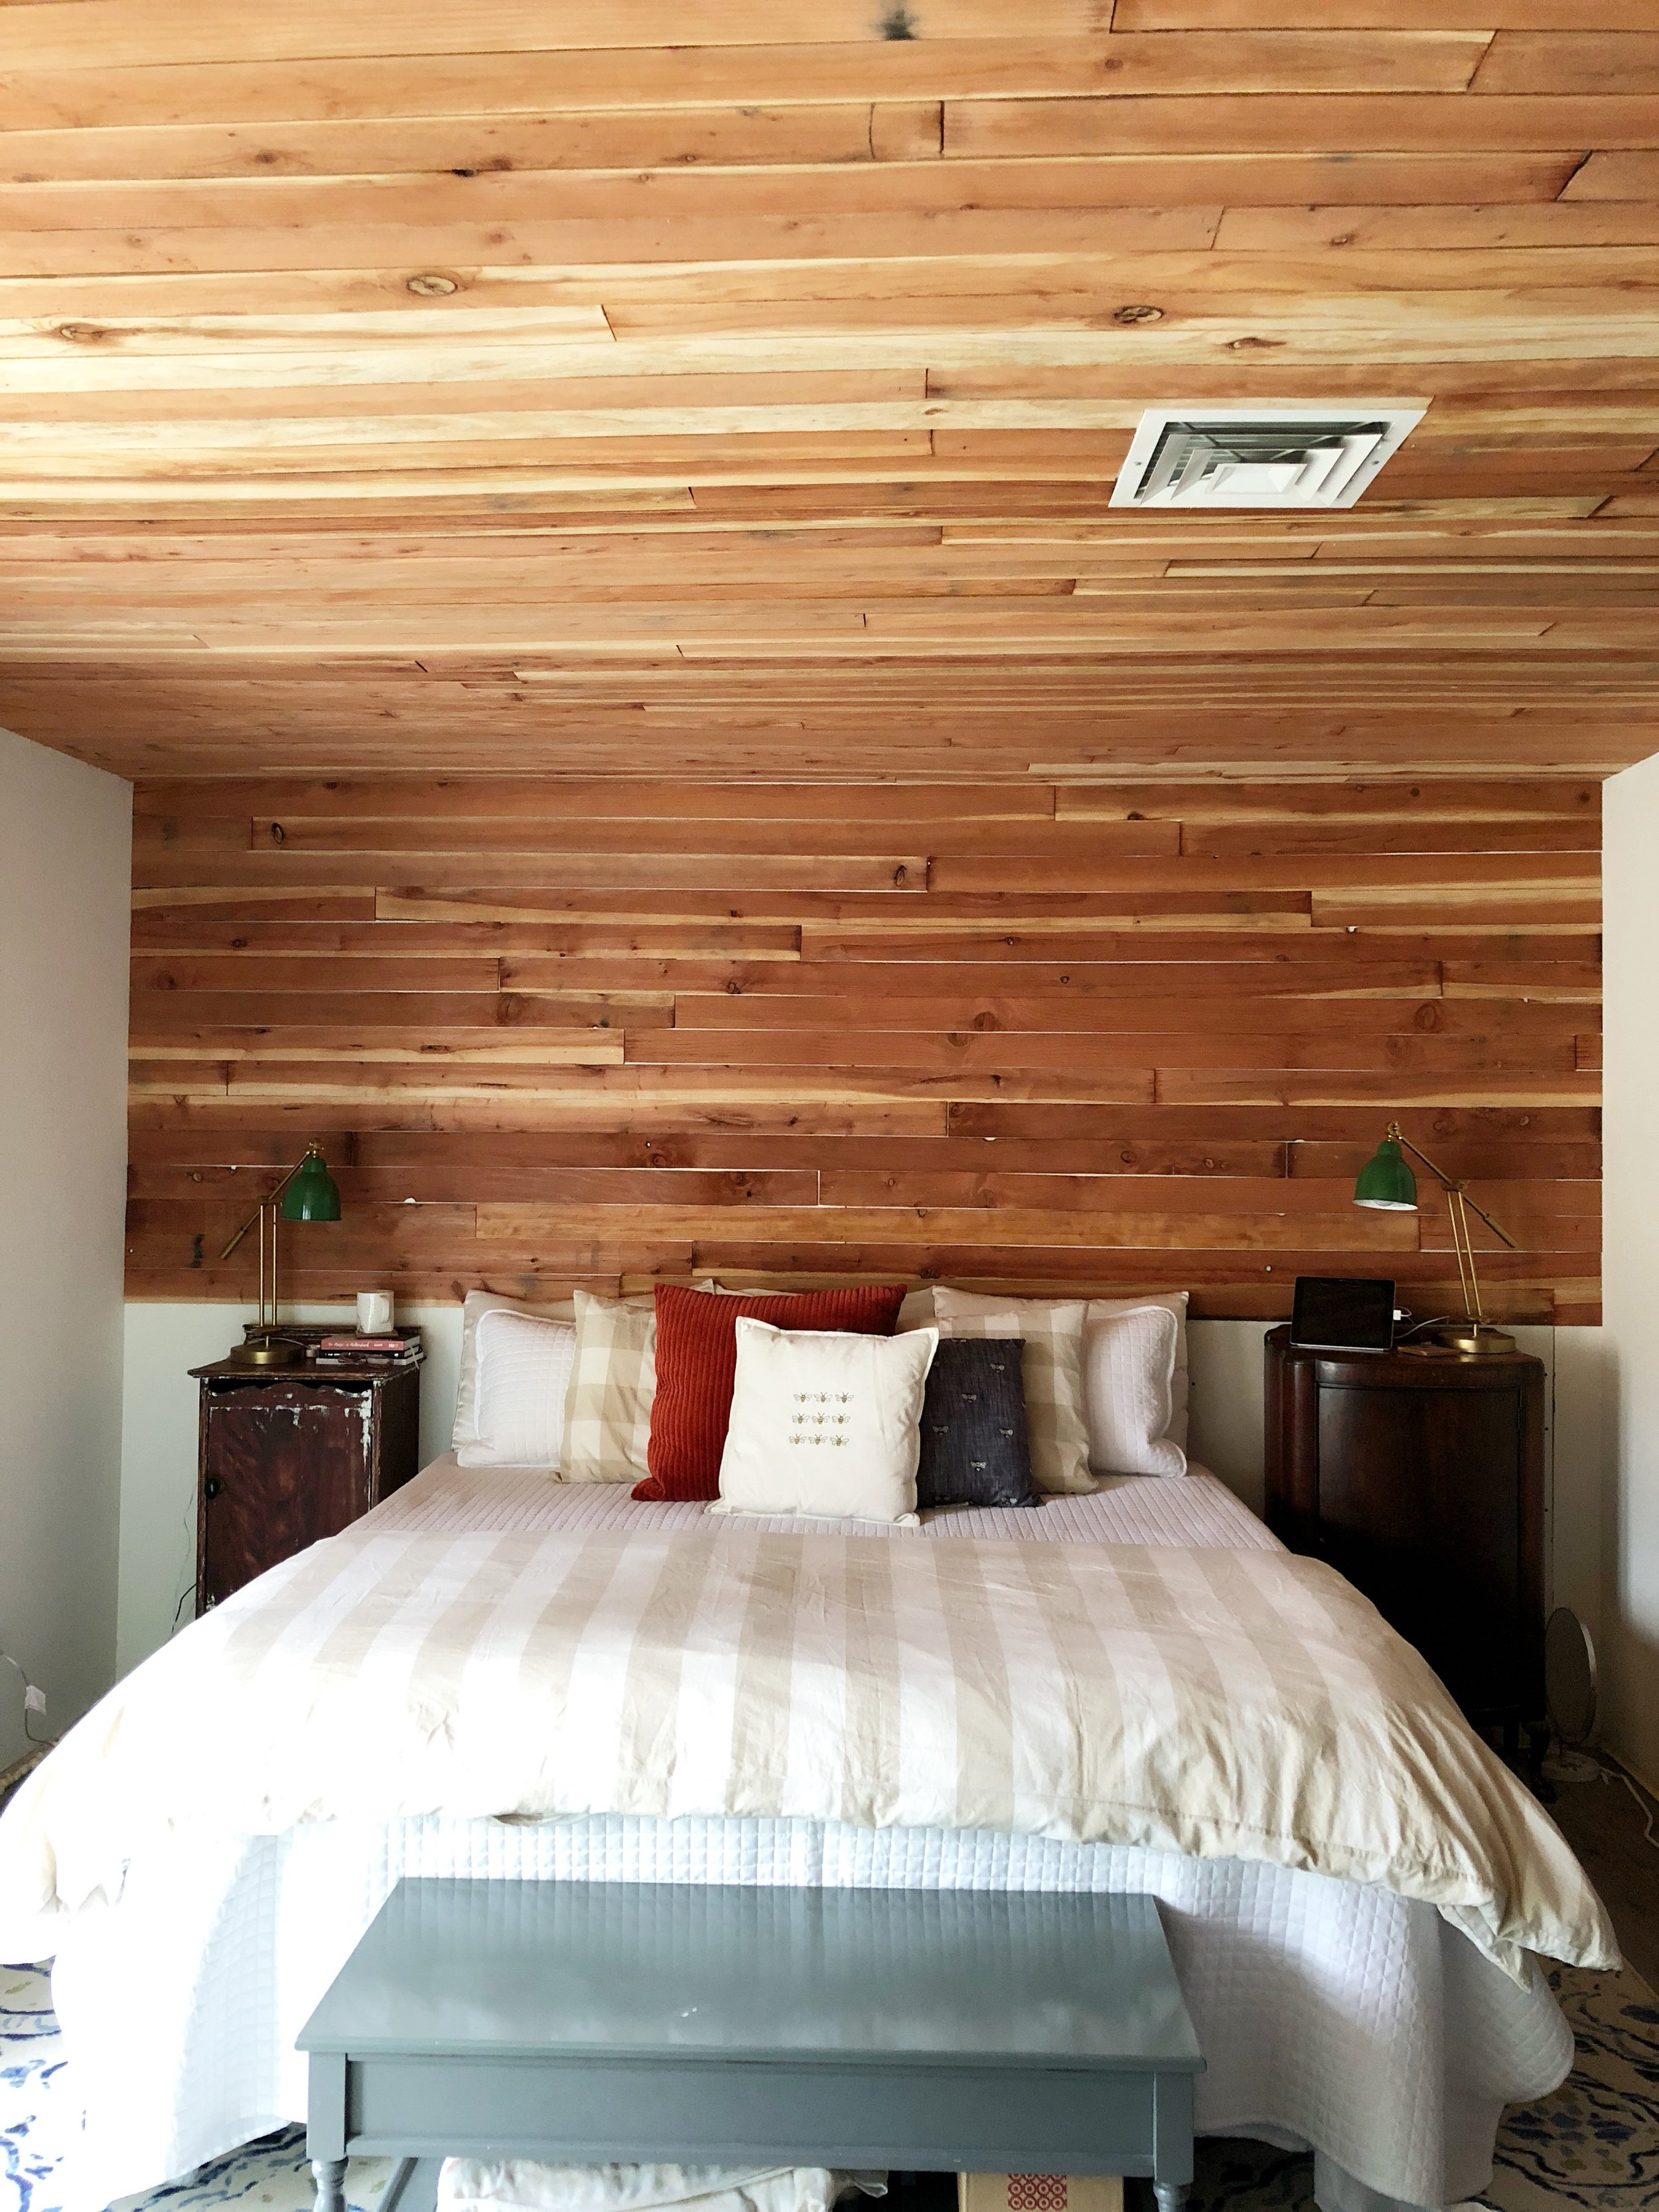 Cedar Wood Paneling in the Master Bedroom Remodel